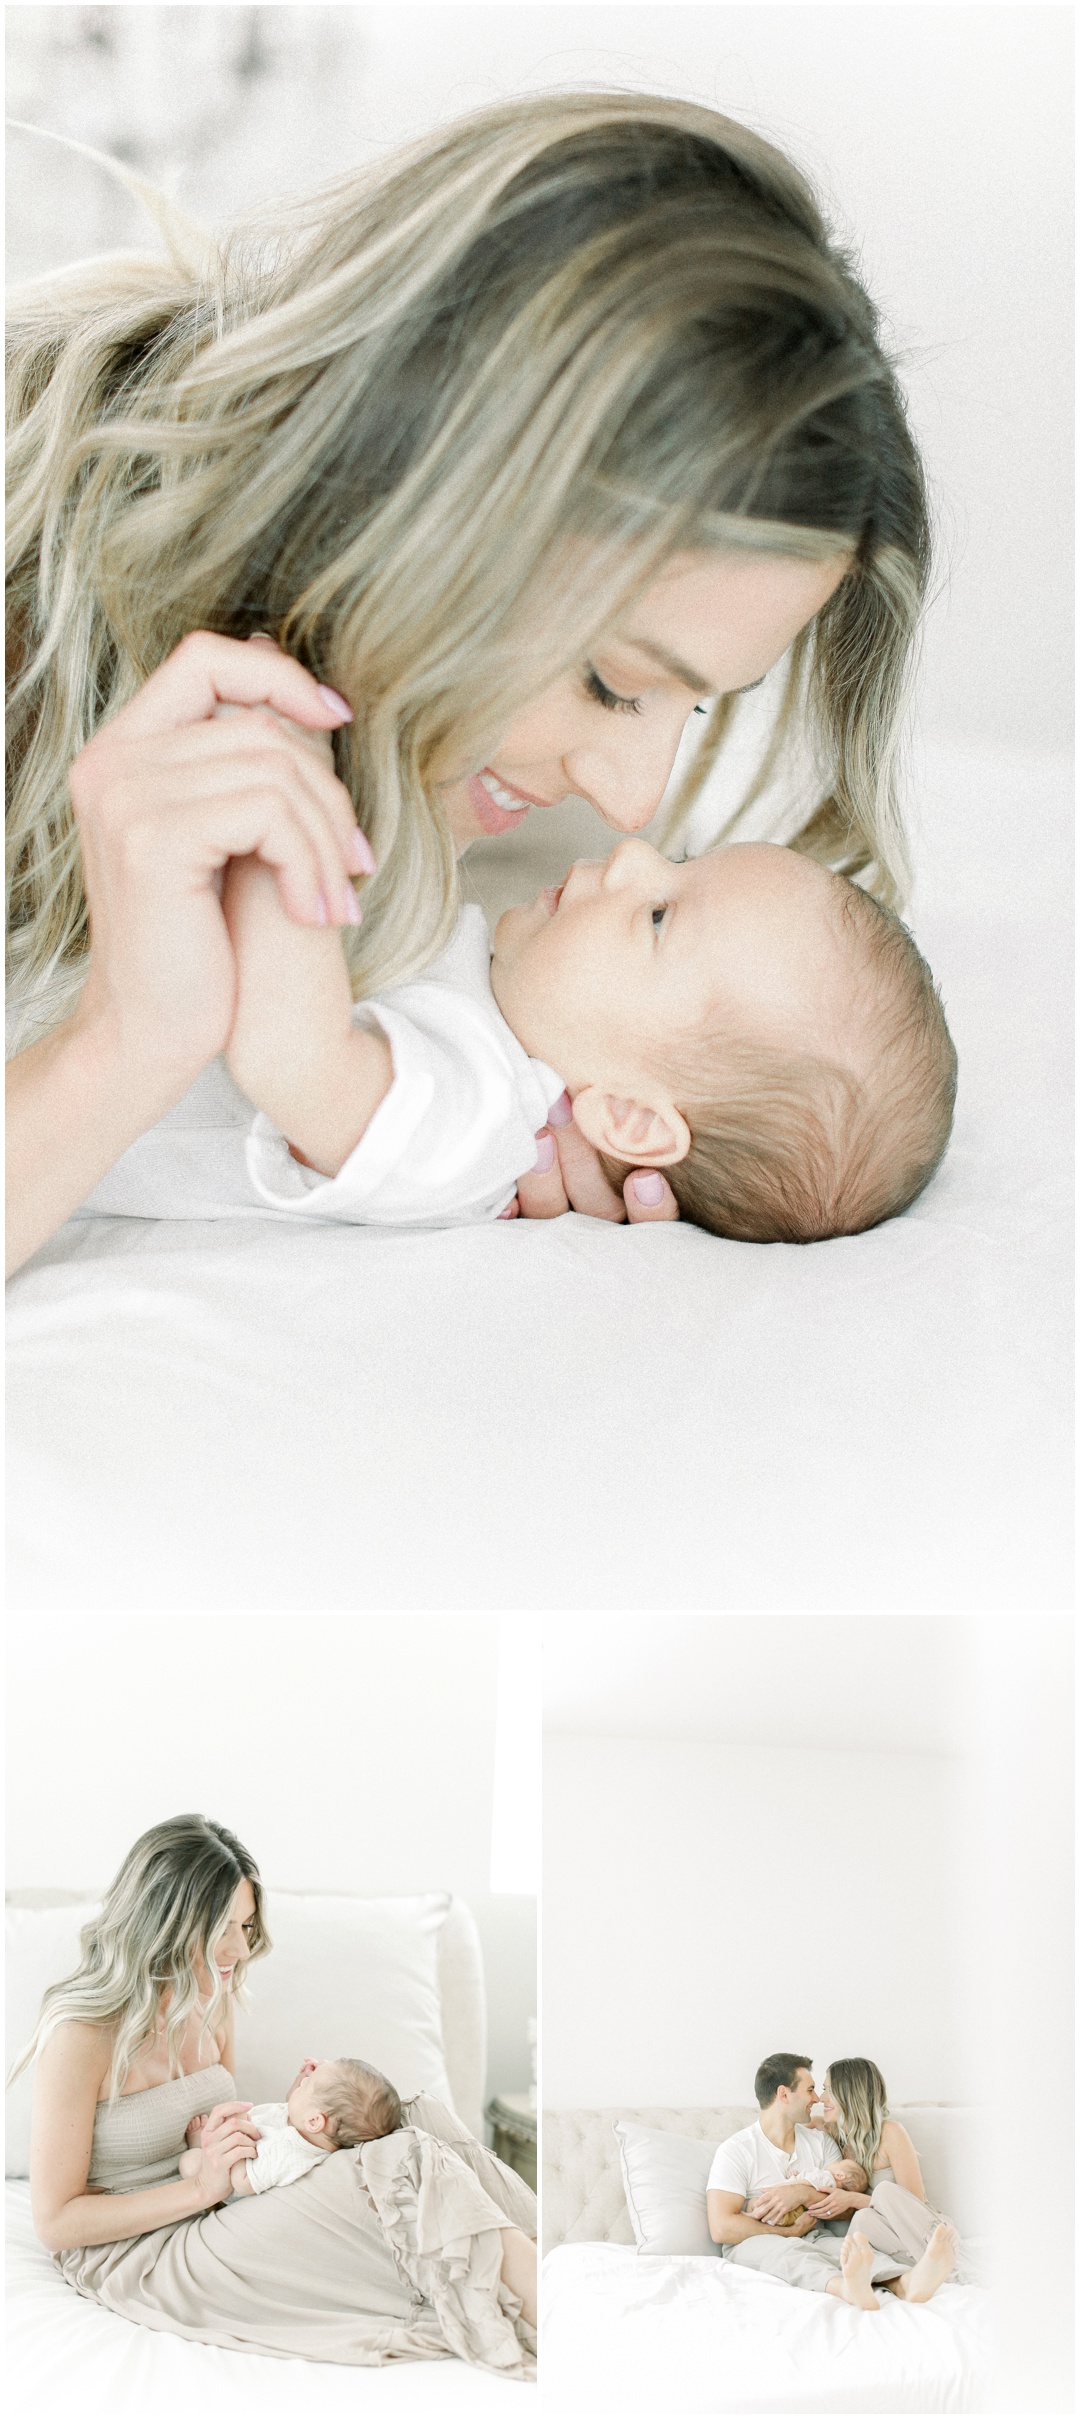 Newport_Beach_Newborn_Session_Orange_County_Family_Photographer_Danielle_Saluan__4291.jpg